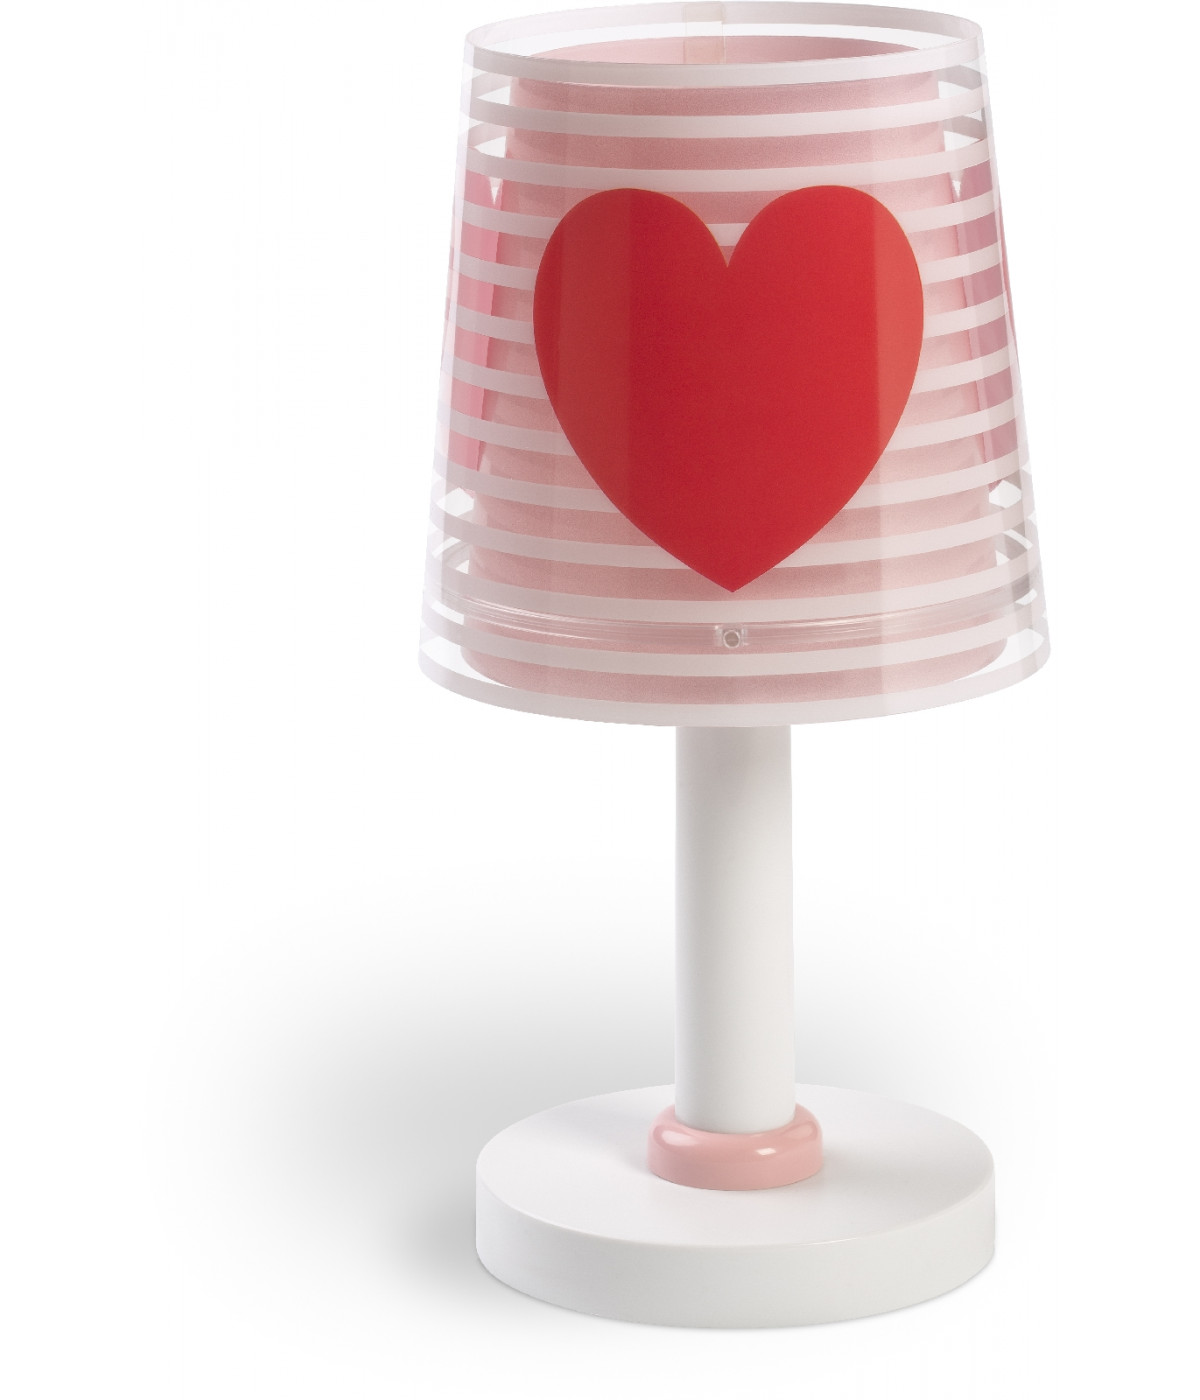 Candeeiro infantil de mesa Light Feeling rosa